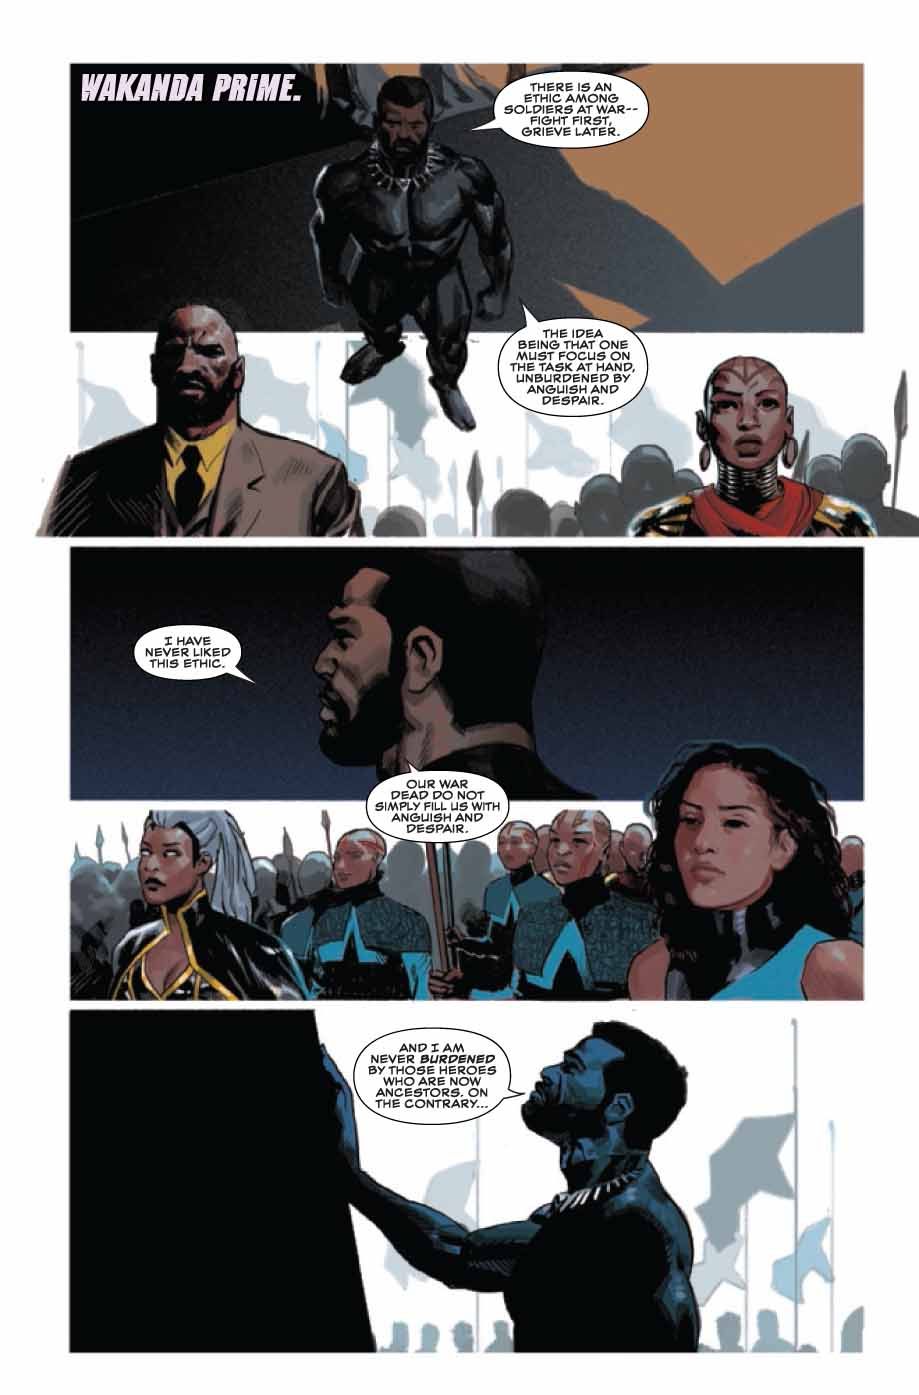 blackpanther232